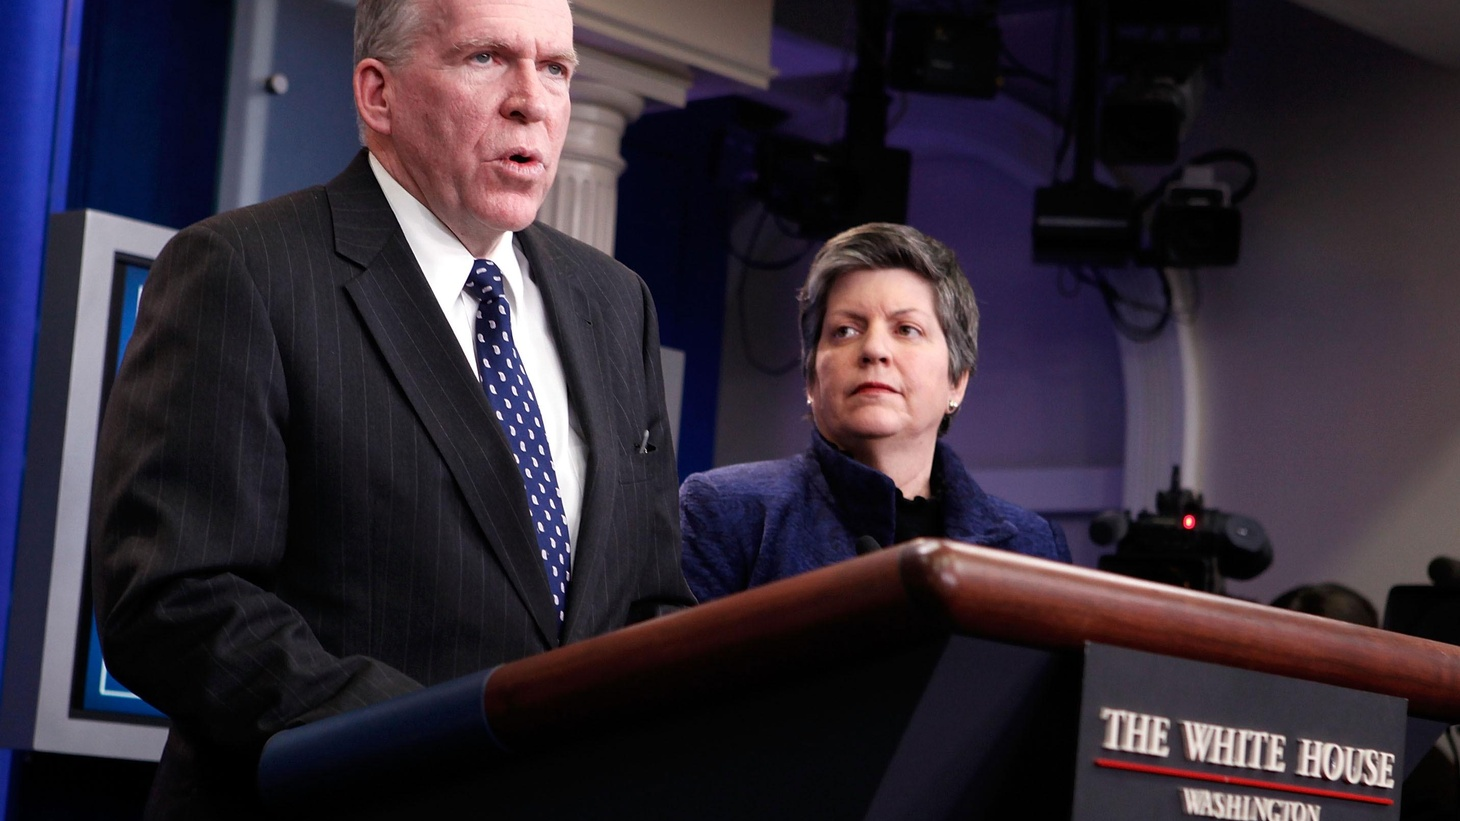 """In a mid-term election year, is political rhetoric obscuring the real issues in the debate of trying the alleged Christmas Day bomber? Republicans have attacked the Obama Administration's decision to prosecute Umar Farouk Abdulmutallab in civilian court, and administration officials are fighting back. Sara Terry guest hosts. Also, Iran raises international alarm with its uranium enrichment plans, and thanks to the Saints, New Orleans will """"let the good times roll."""""""